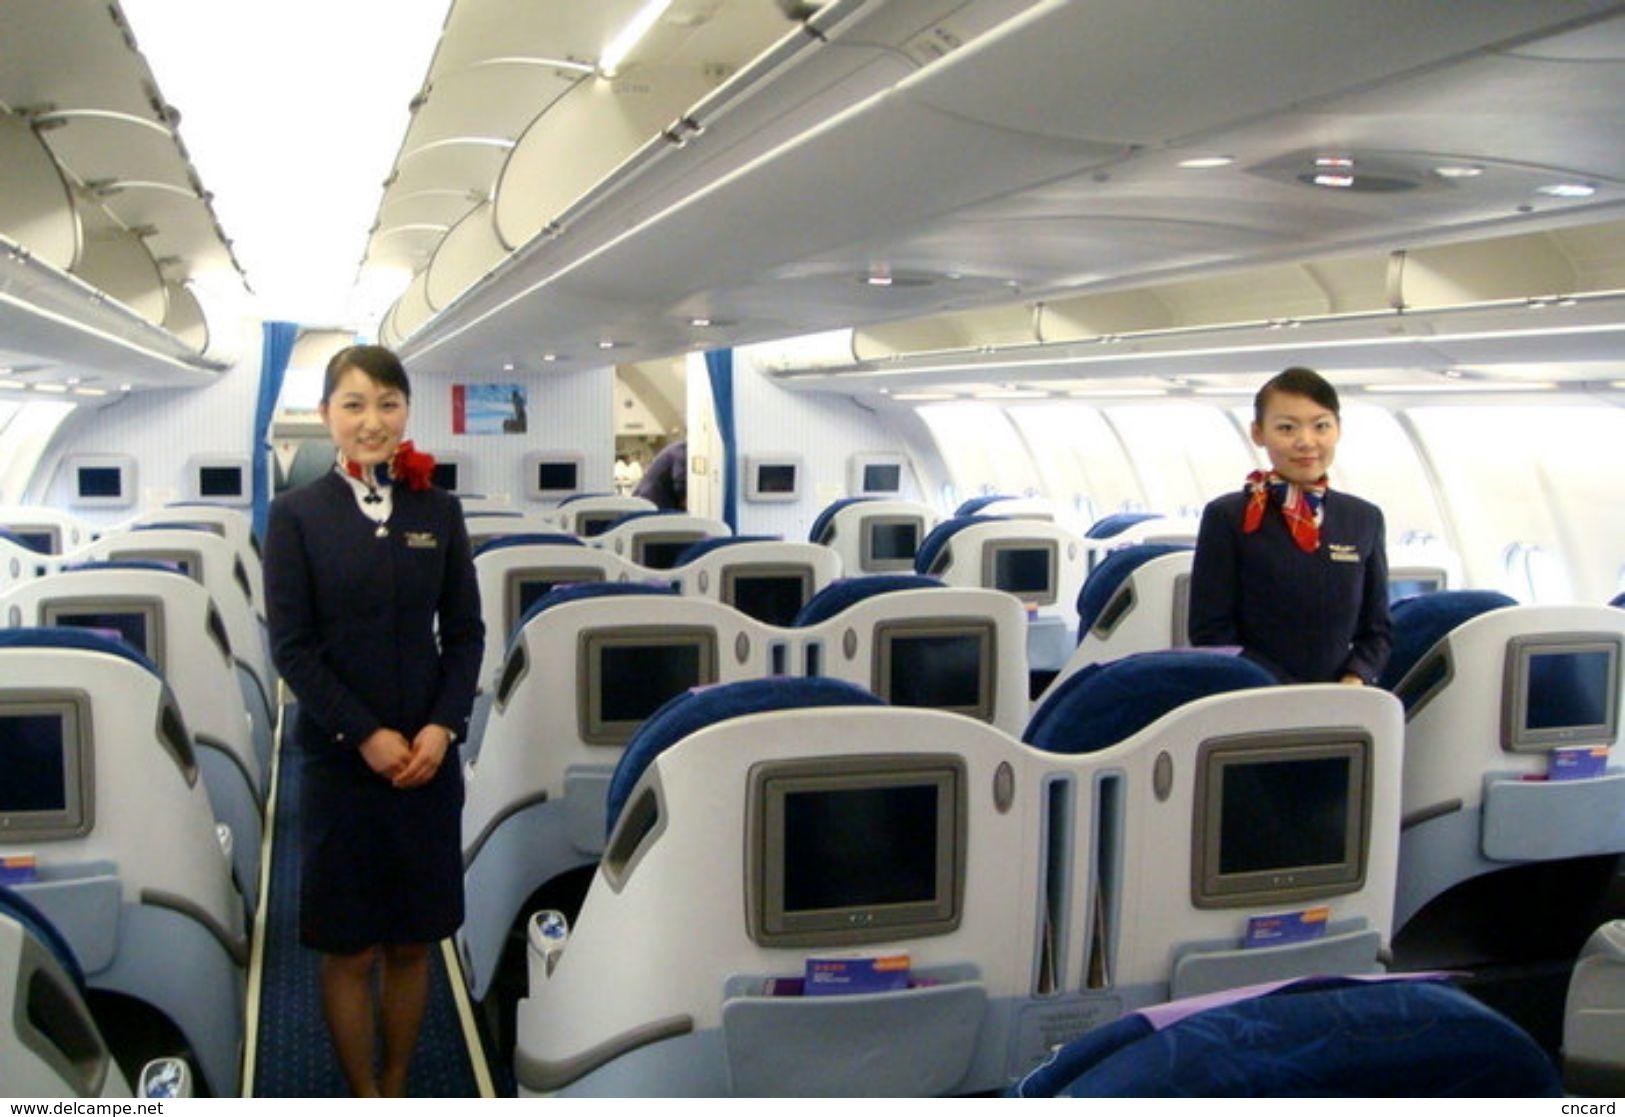 T80-077  ]  Flight Attendants Air Attendants Stewardesses Hostesses Cabin Crew , China Pre-paid Card, Postal Statioery - Other